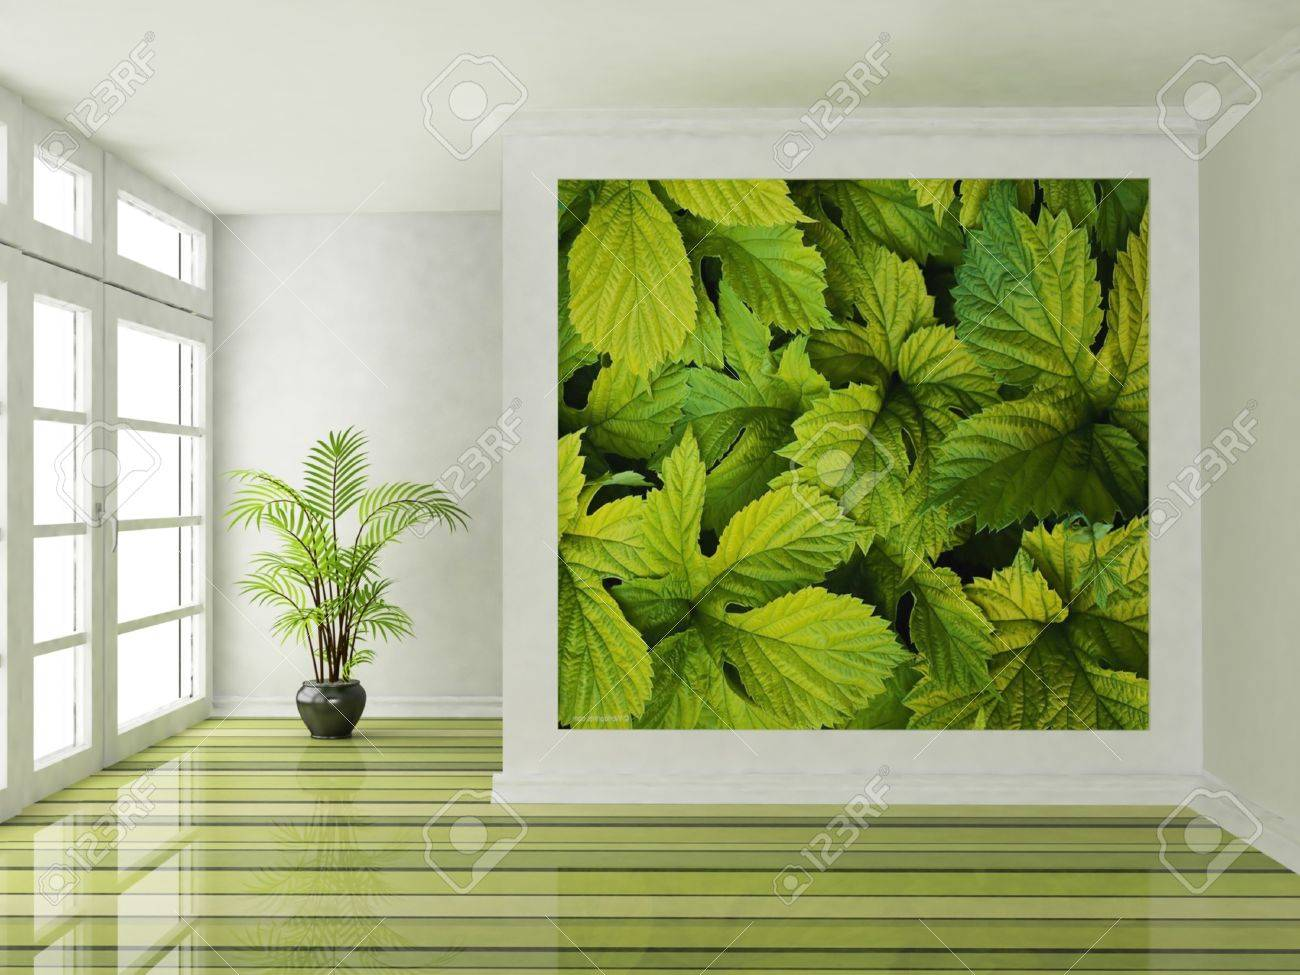 Interior design scene with a big window and a plant Stock Photo - 12880590